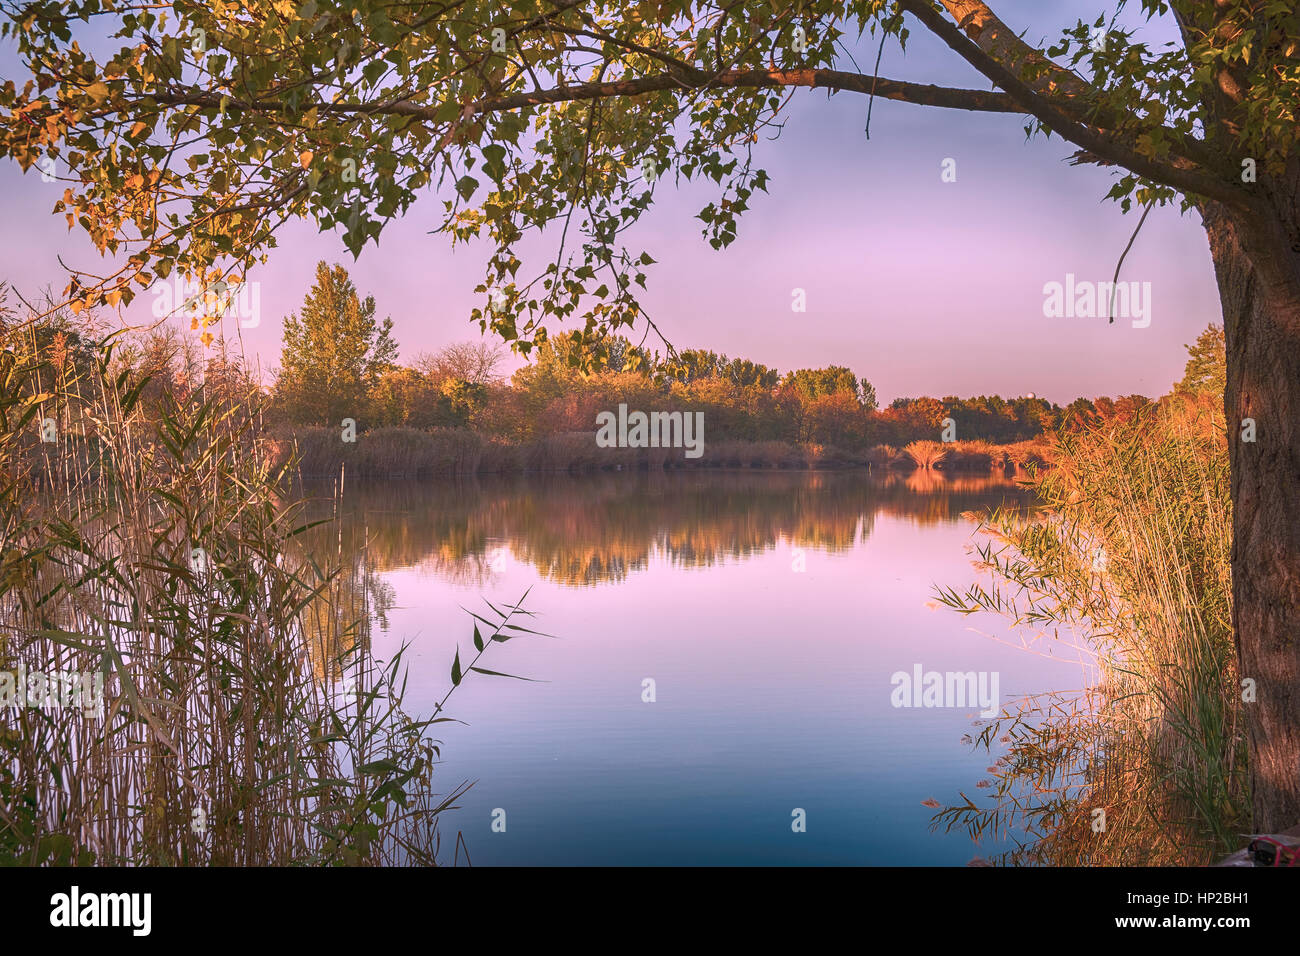 Autumn forest and lake - Stock Image